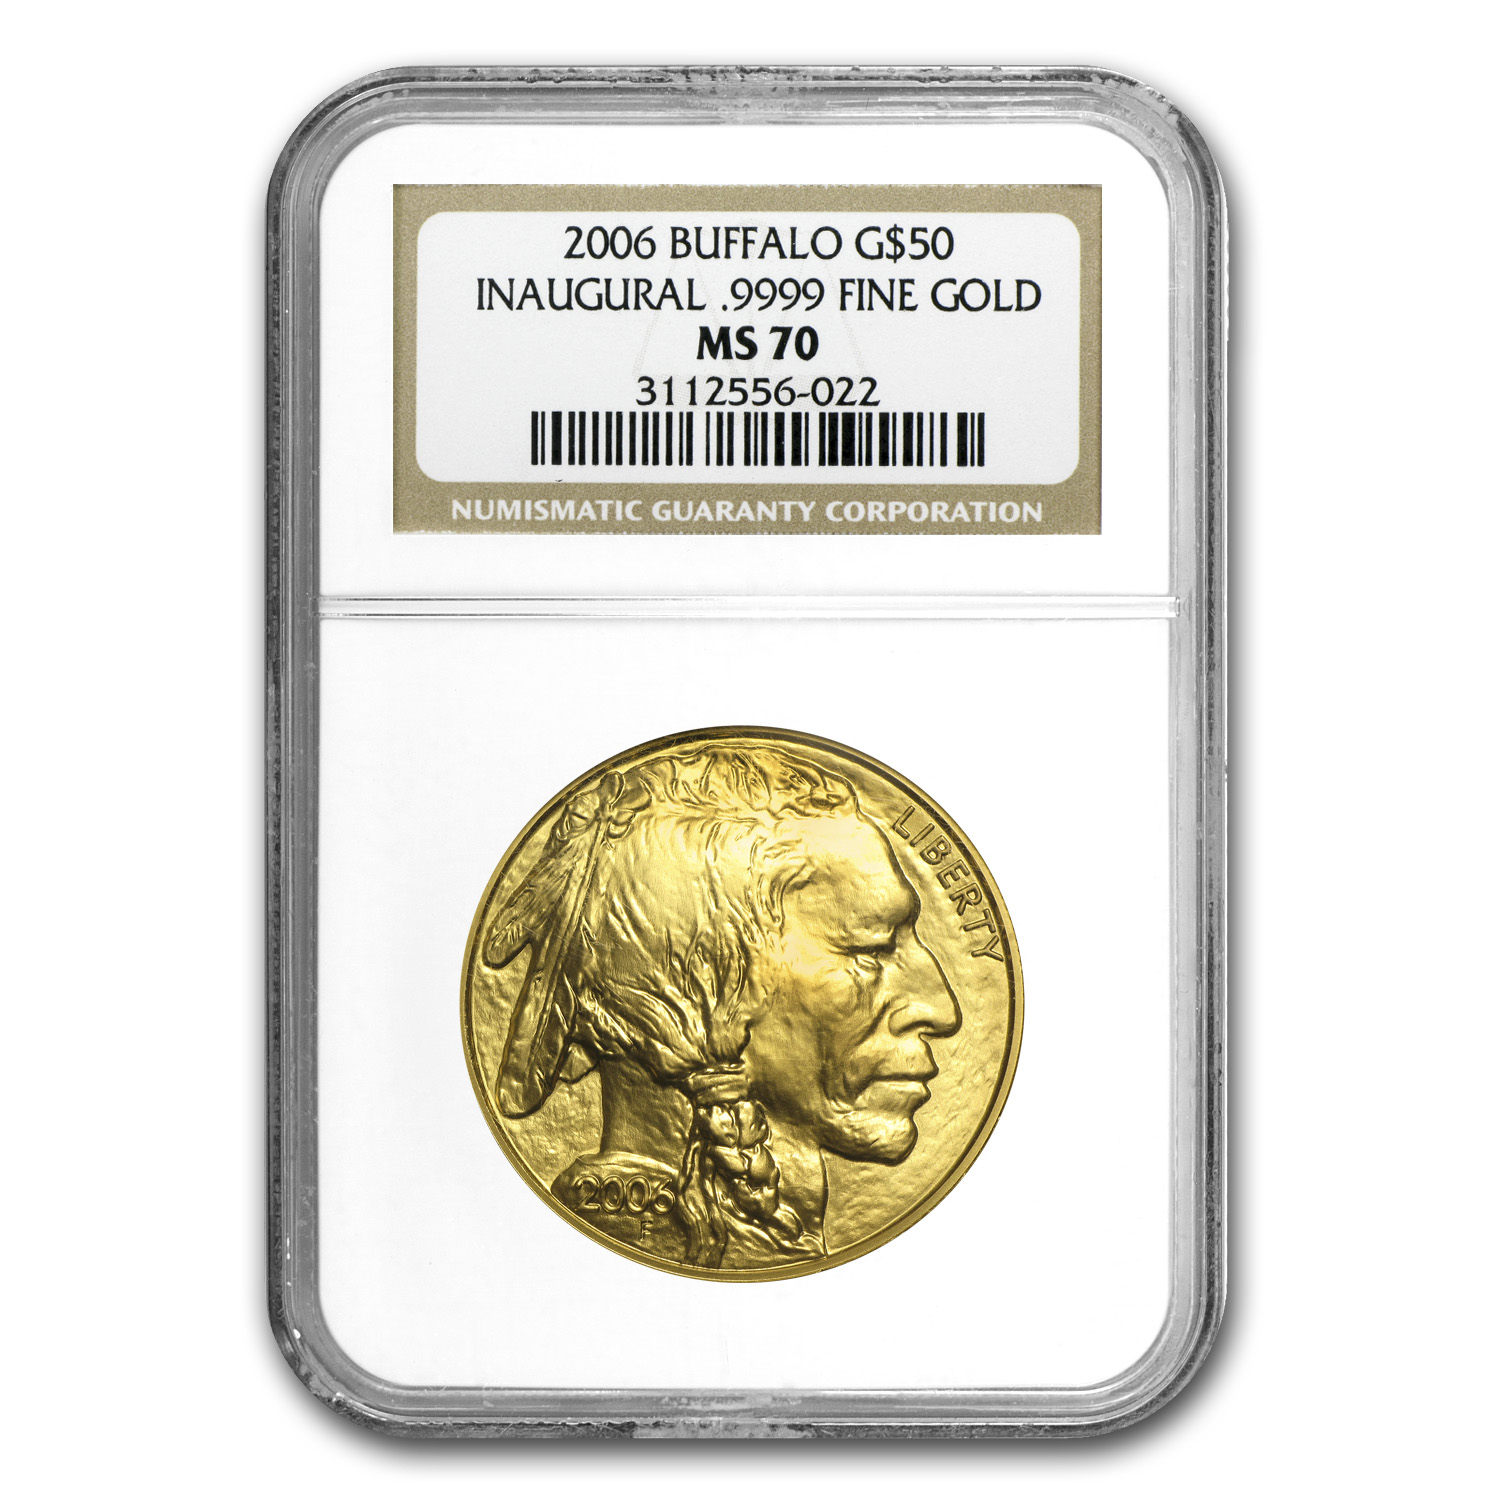 2006 1 oz Gold Buffalo MS-70 NGC (Inaugural Label)